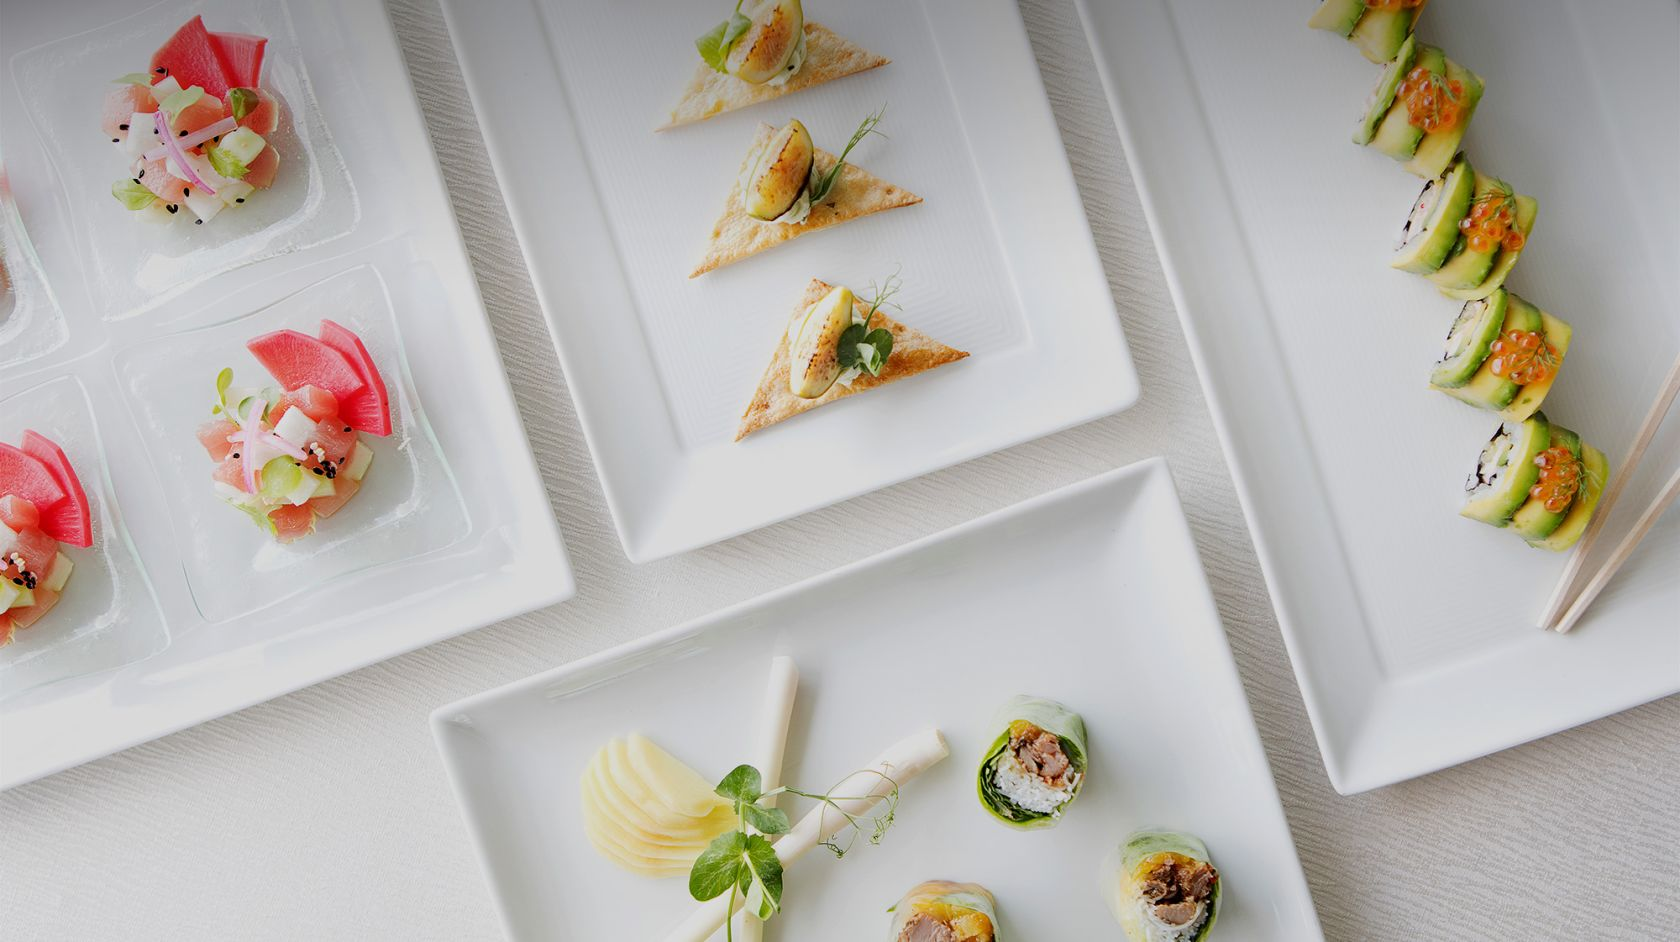 white plates of appetizers on a table